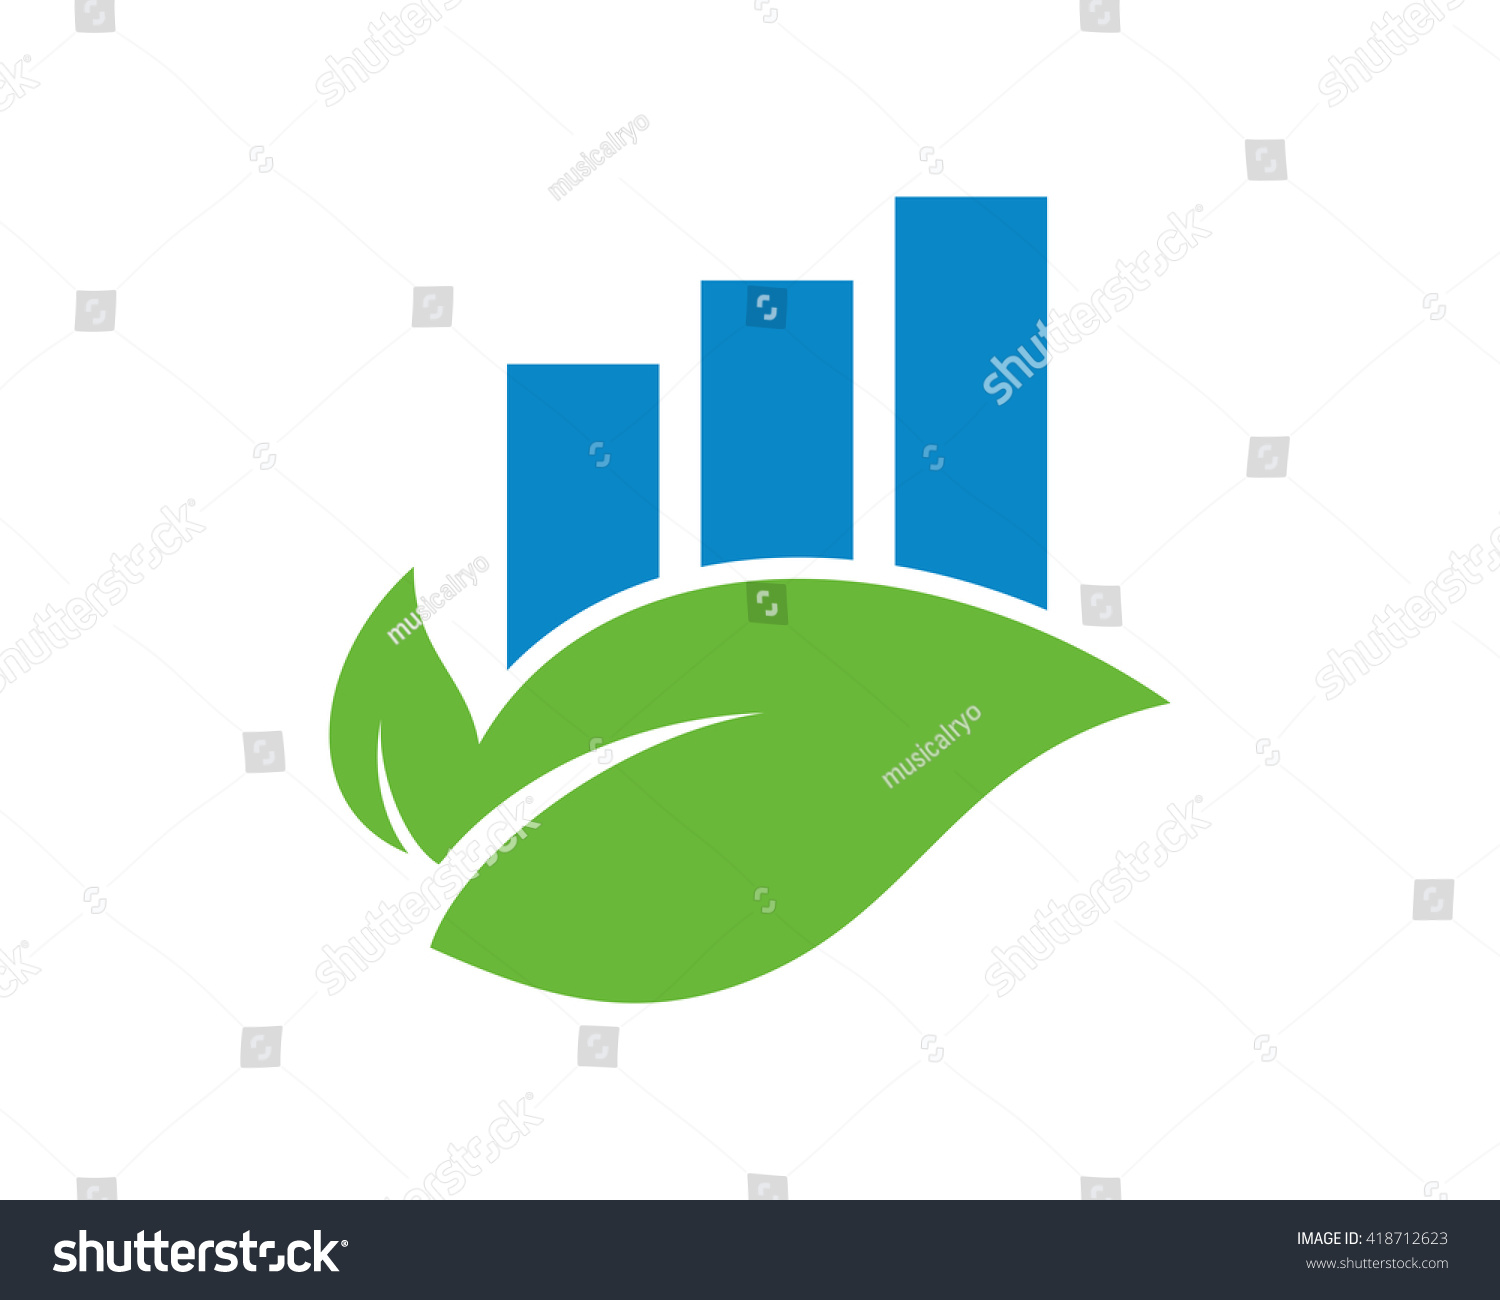 Leaf diagram graph image vector icon stock vector 418712623 leaf diagram graph image vector icon pooptronica Choice Image